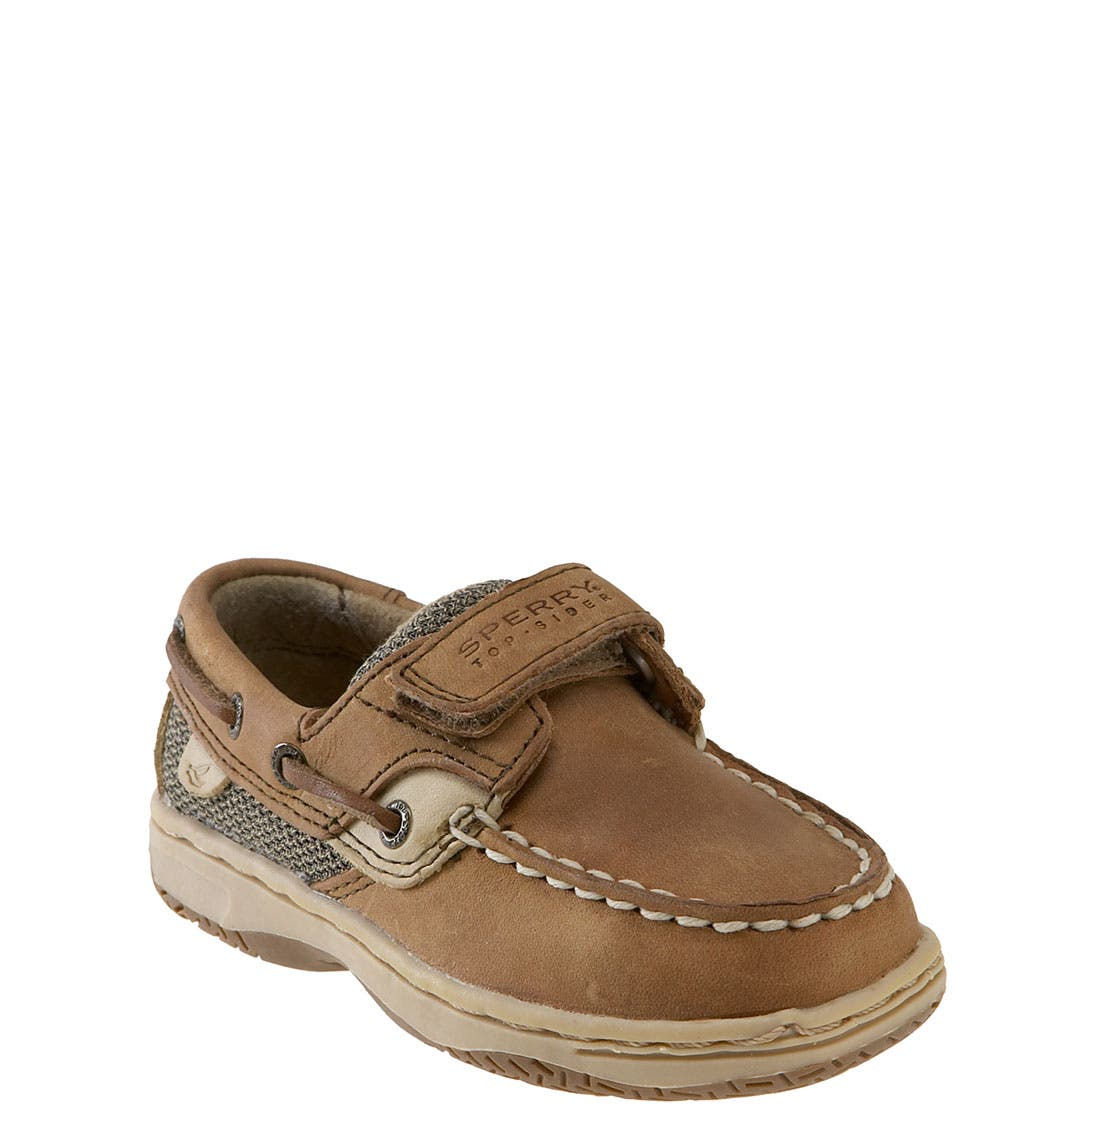 Main Image - Sperry Kids 'Bluefish' Oxford (Walker & Toddler)